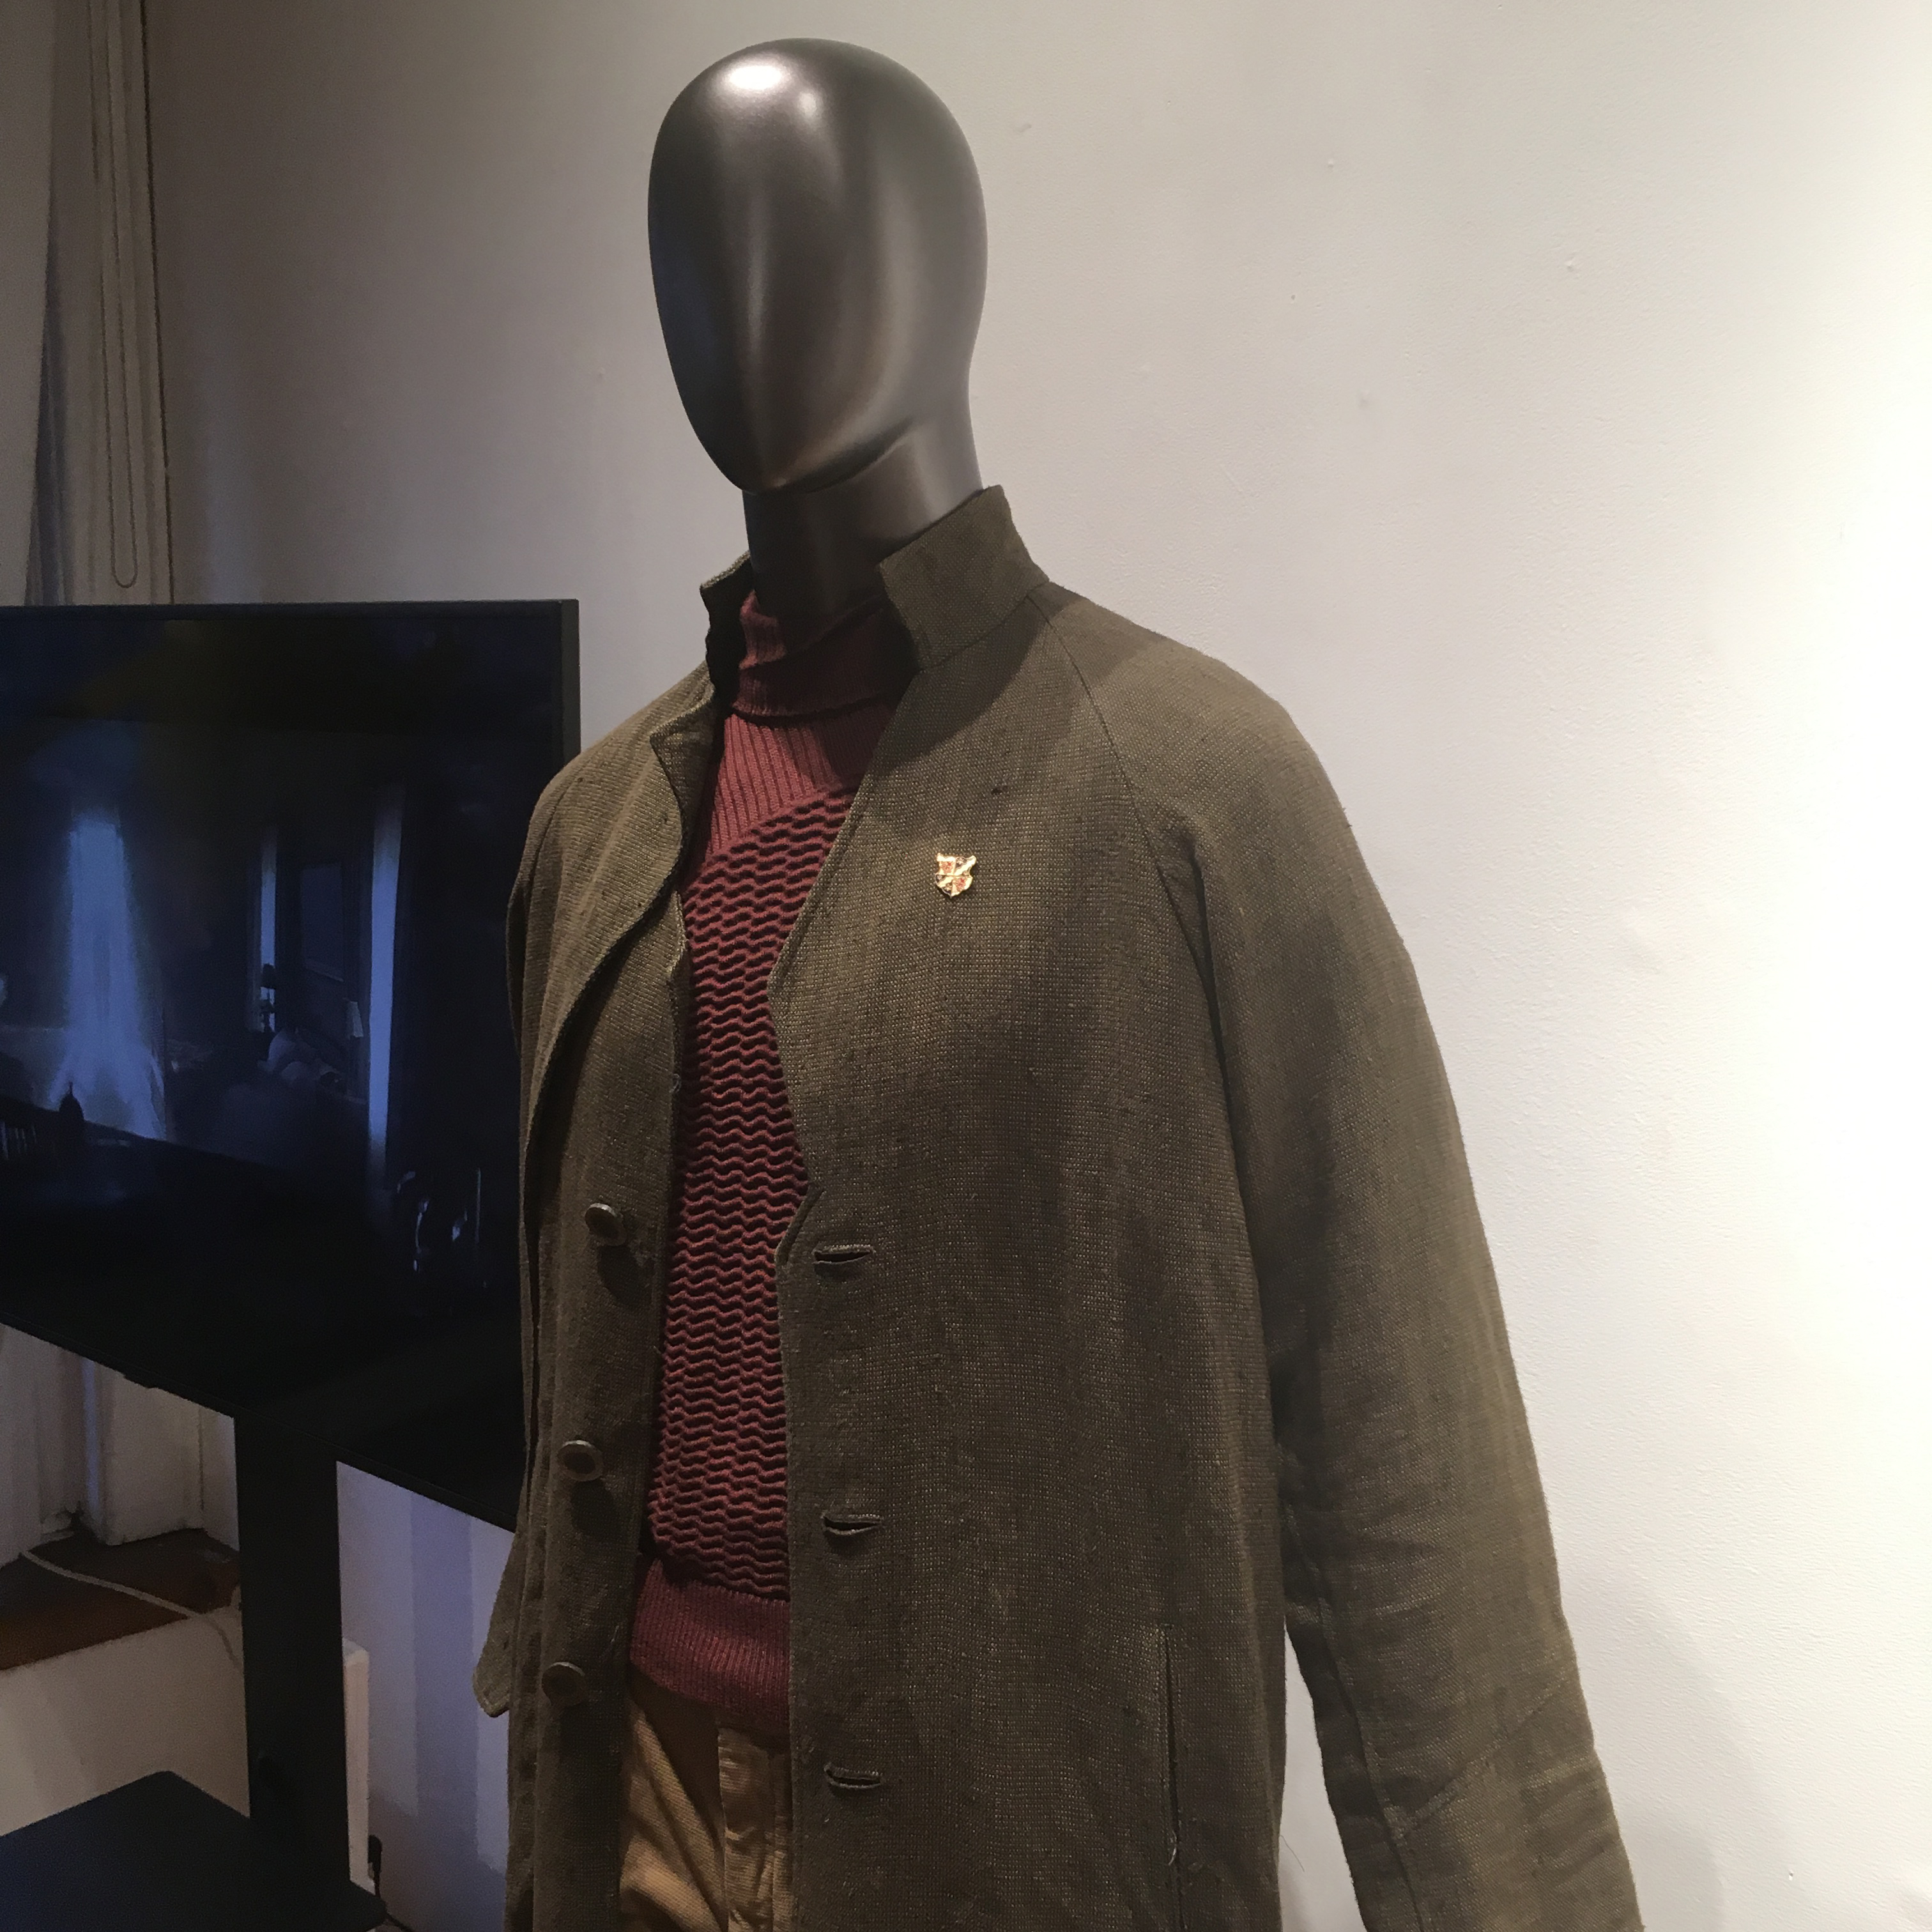 Picard-country-outfit-SDCC-2019